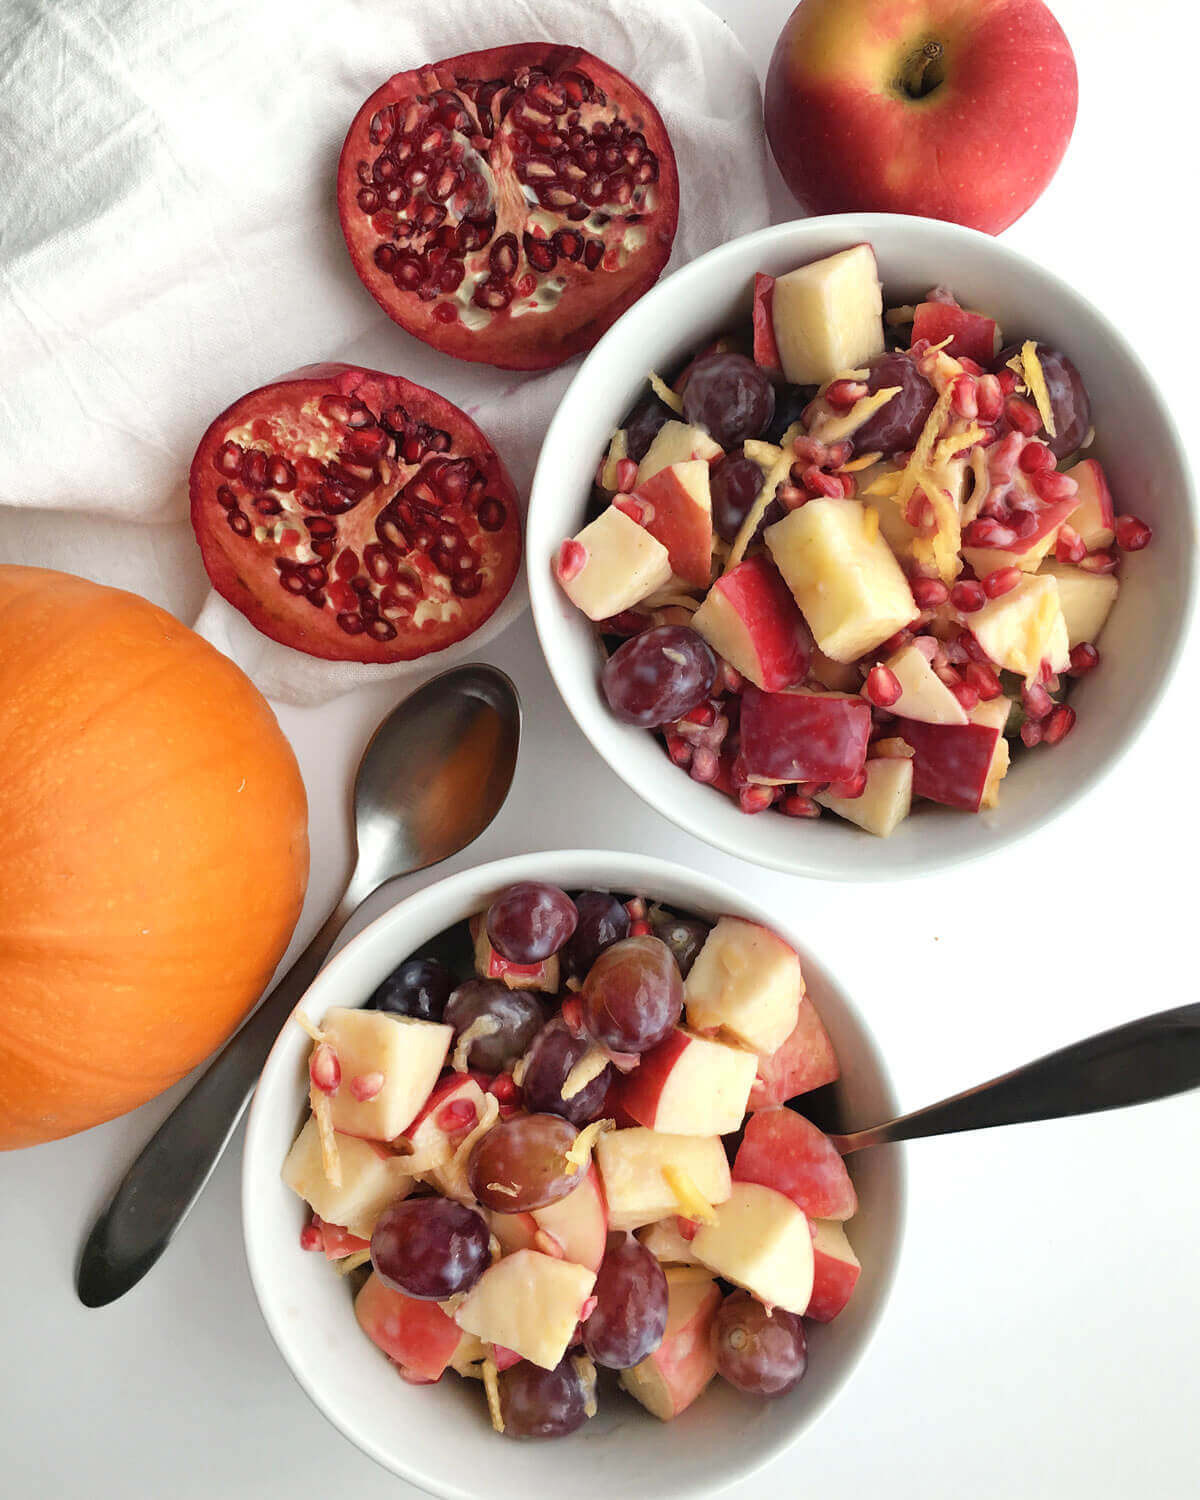 Fall Fruit Desserts  Top 30 Fall Fruit Desserts Most Popular Ideas of All Time